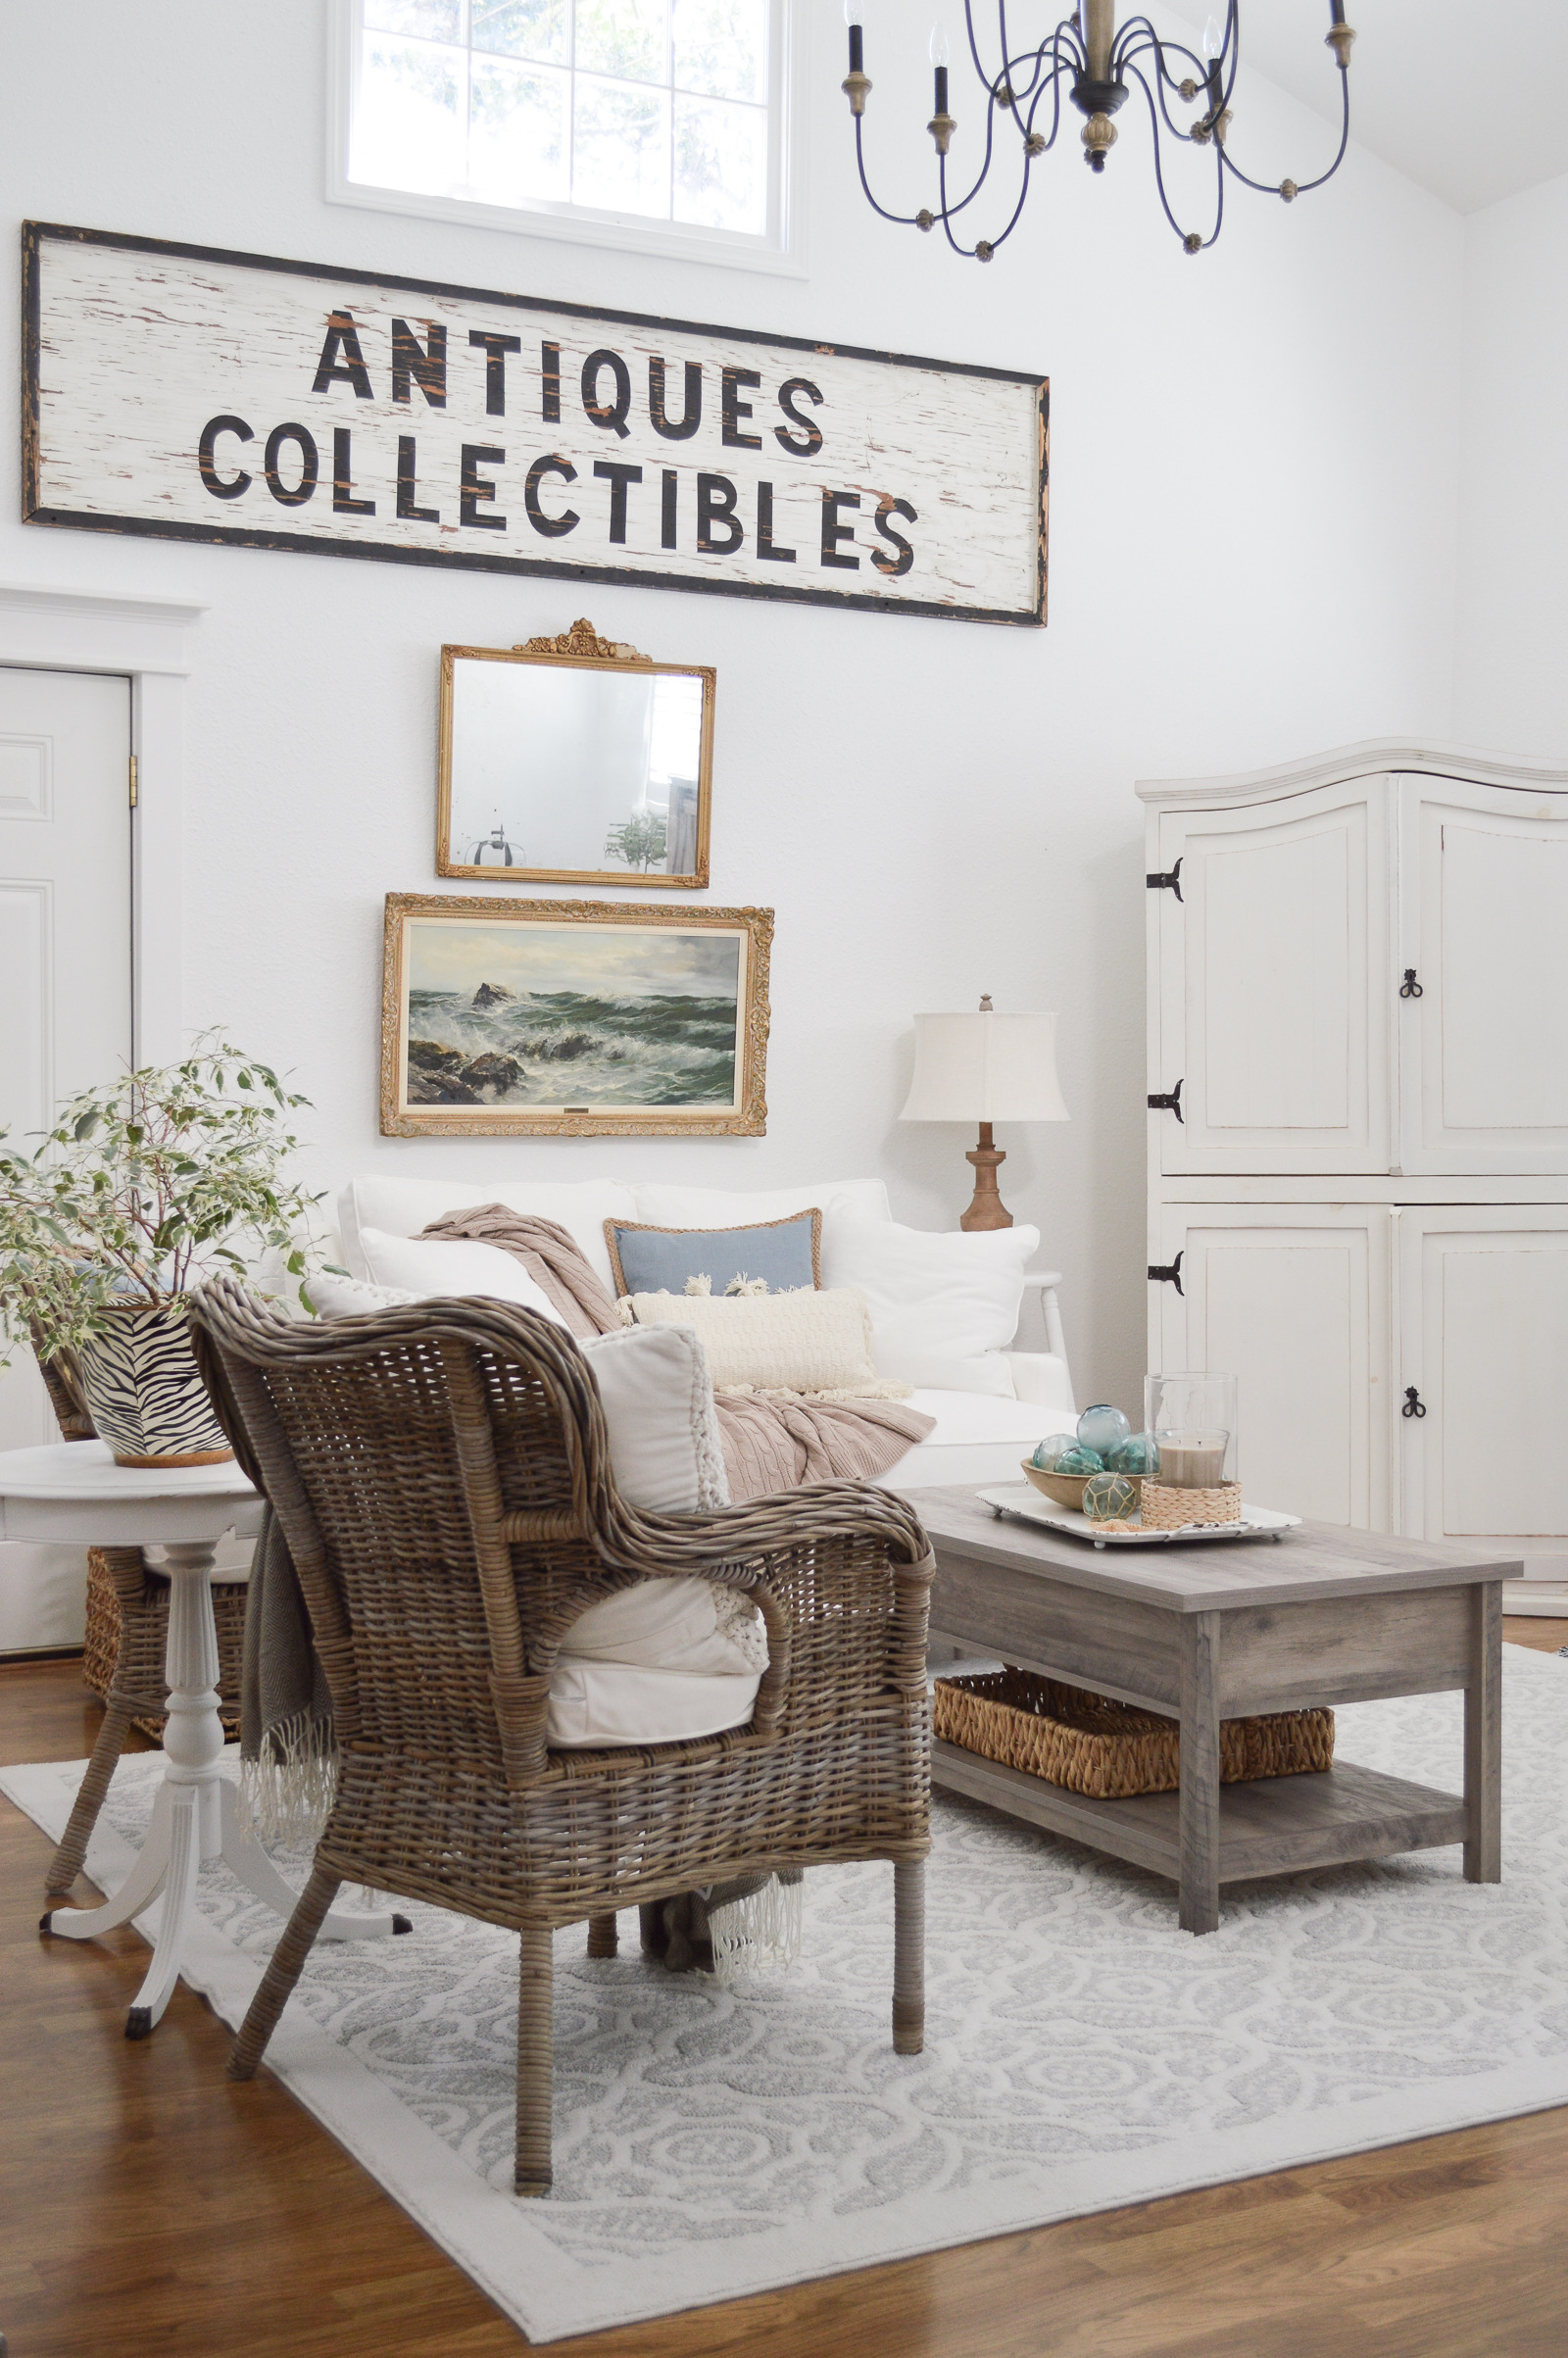 Cottage Farmhouse Living Room Decorated in Casual Cozy Coastal Vibe and Neutrals with Better Homes Gardens by Shannon Fox ad cottage farmhouse livingroom bhgatwalmart 3